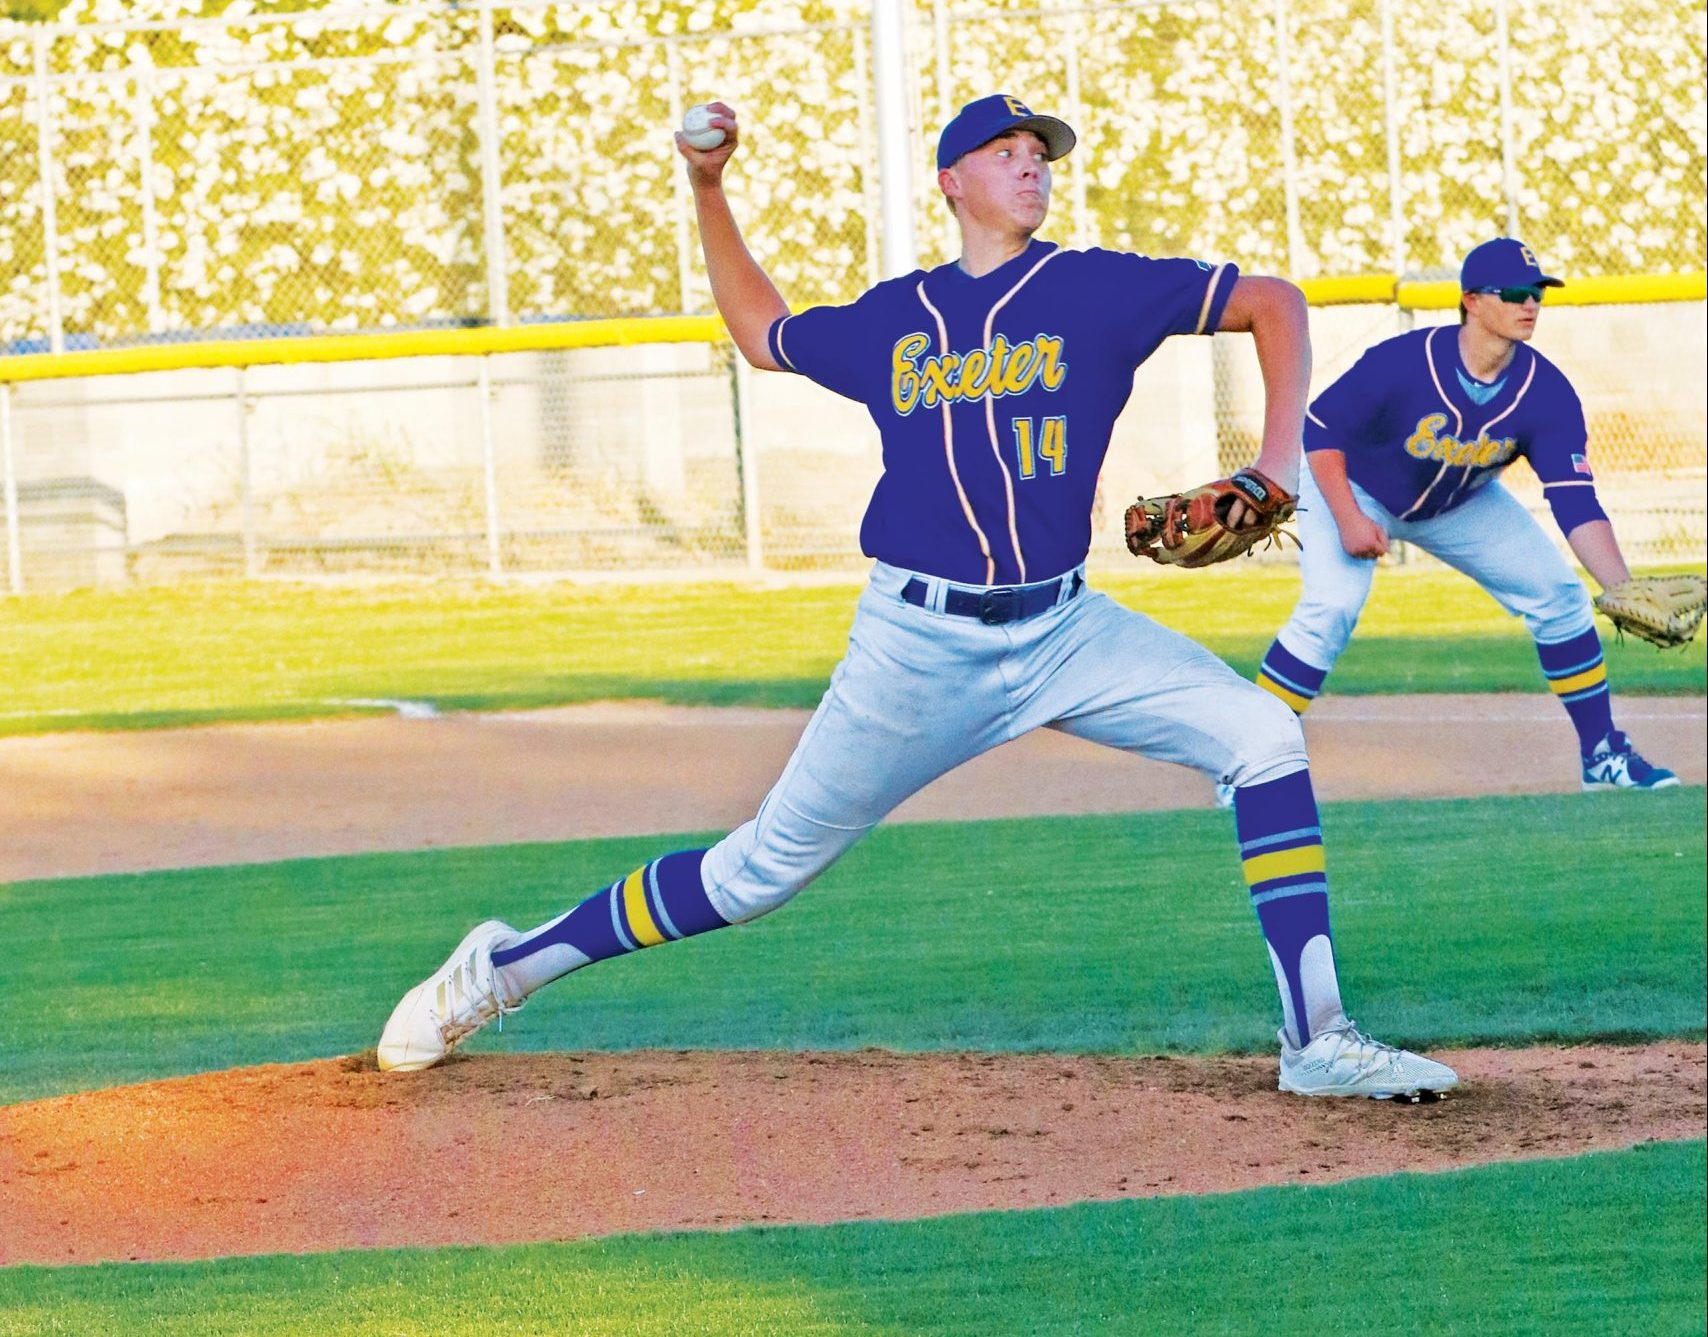 jj-sports-exeter-baseball_dylan-see-pitching